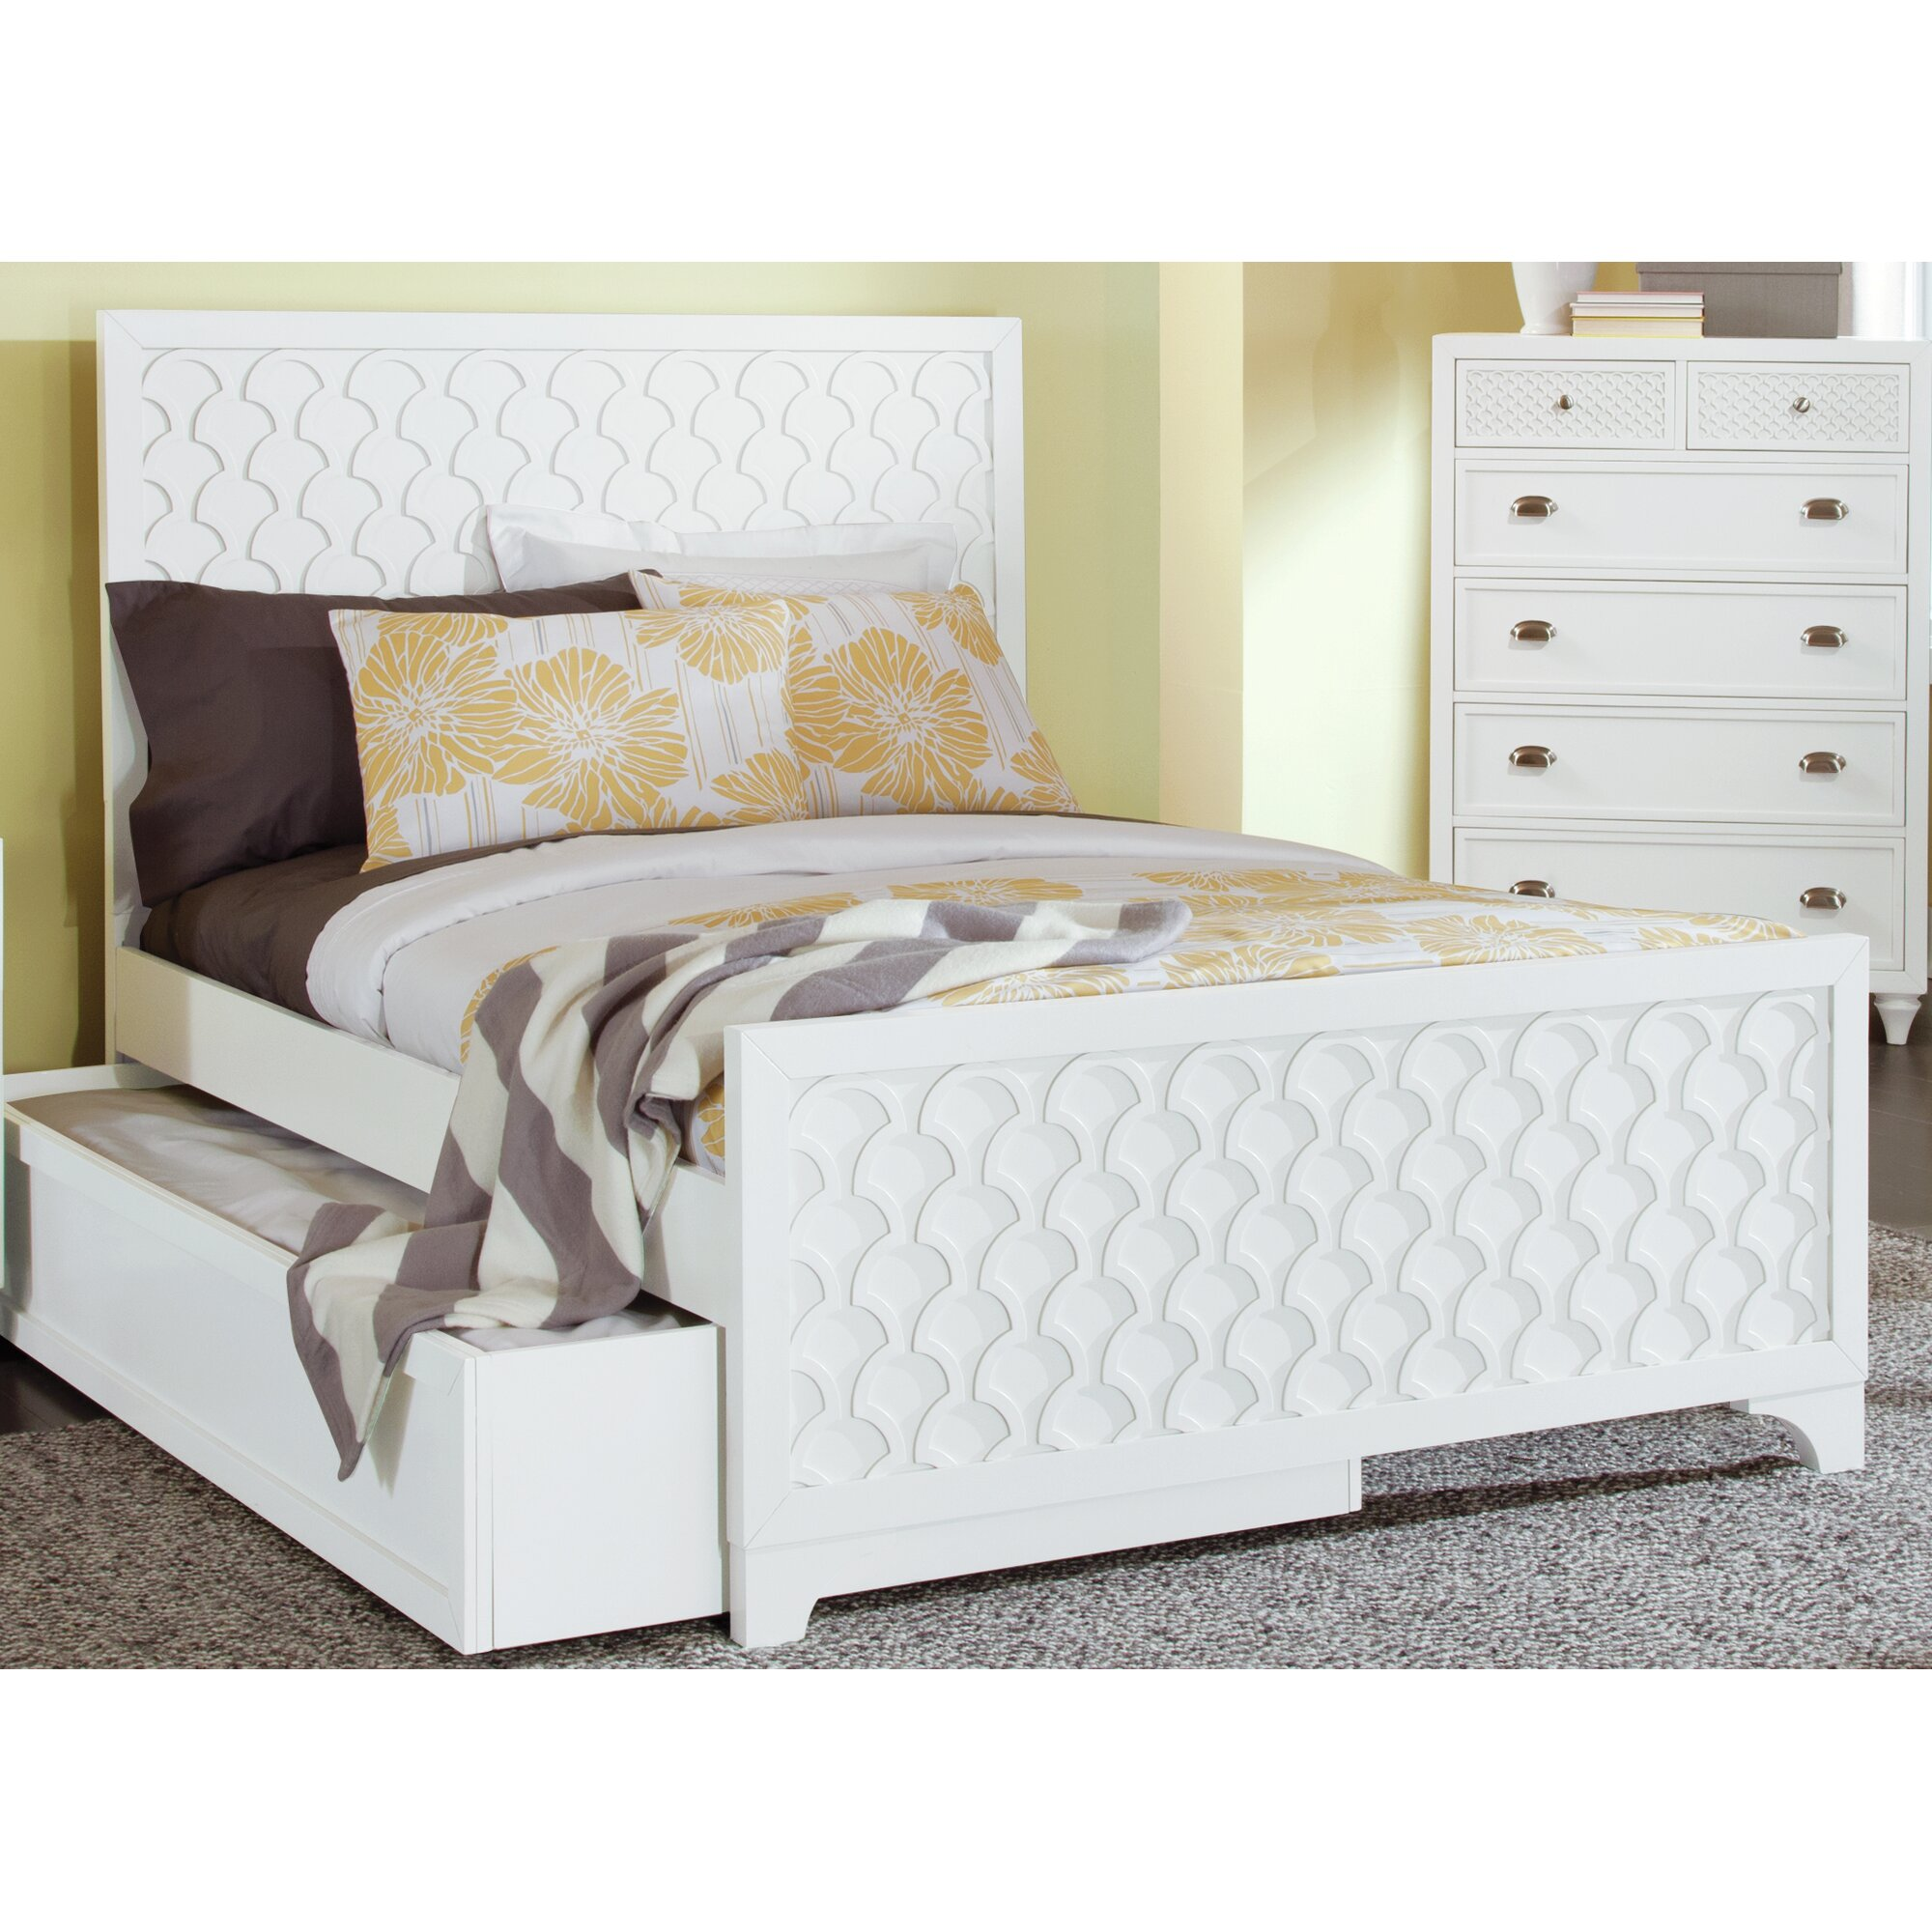 My home furnishings amanda 6 drawer chest reviews wayfair for Find home furnishings